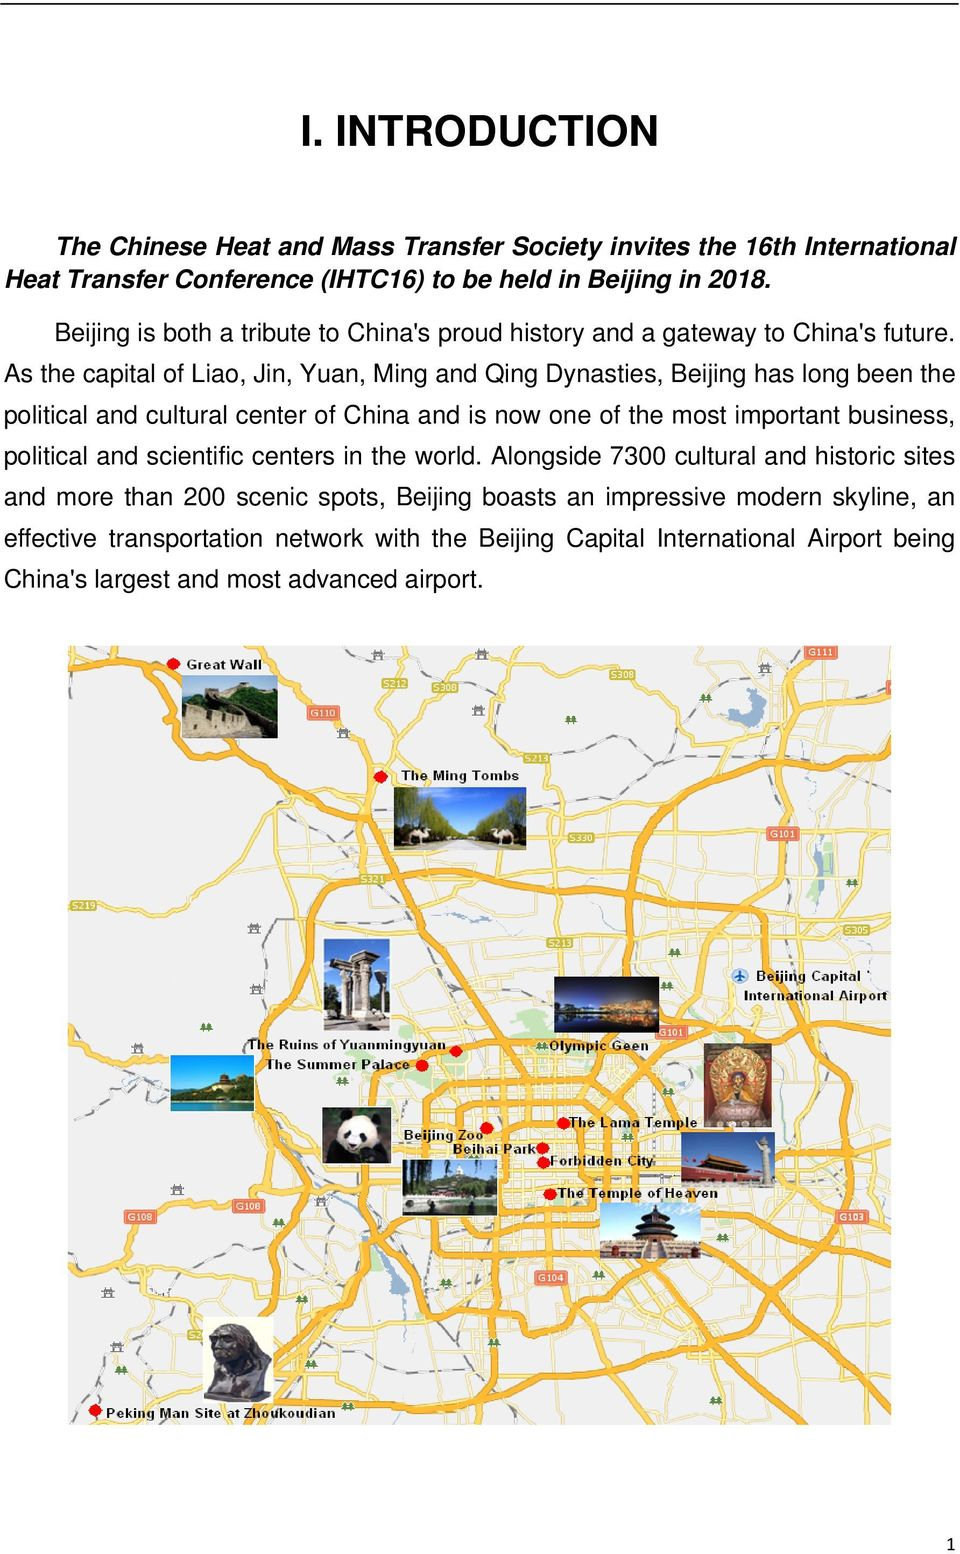 As the capital of Liao, Jin, Yuan, Ming and Qing Dynasties, Beijing has long been the political and cultural center of China and is now one of the most important business,